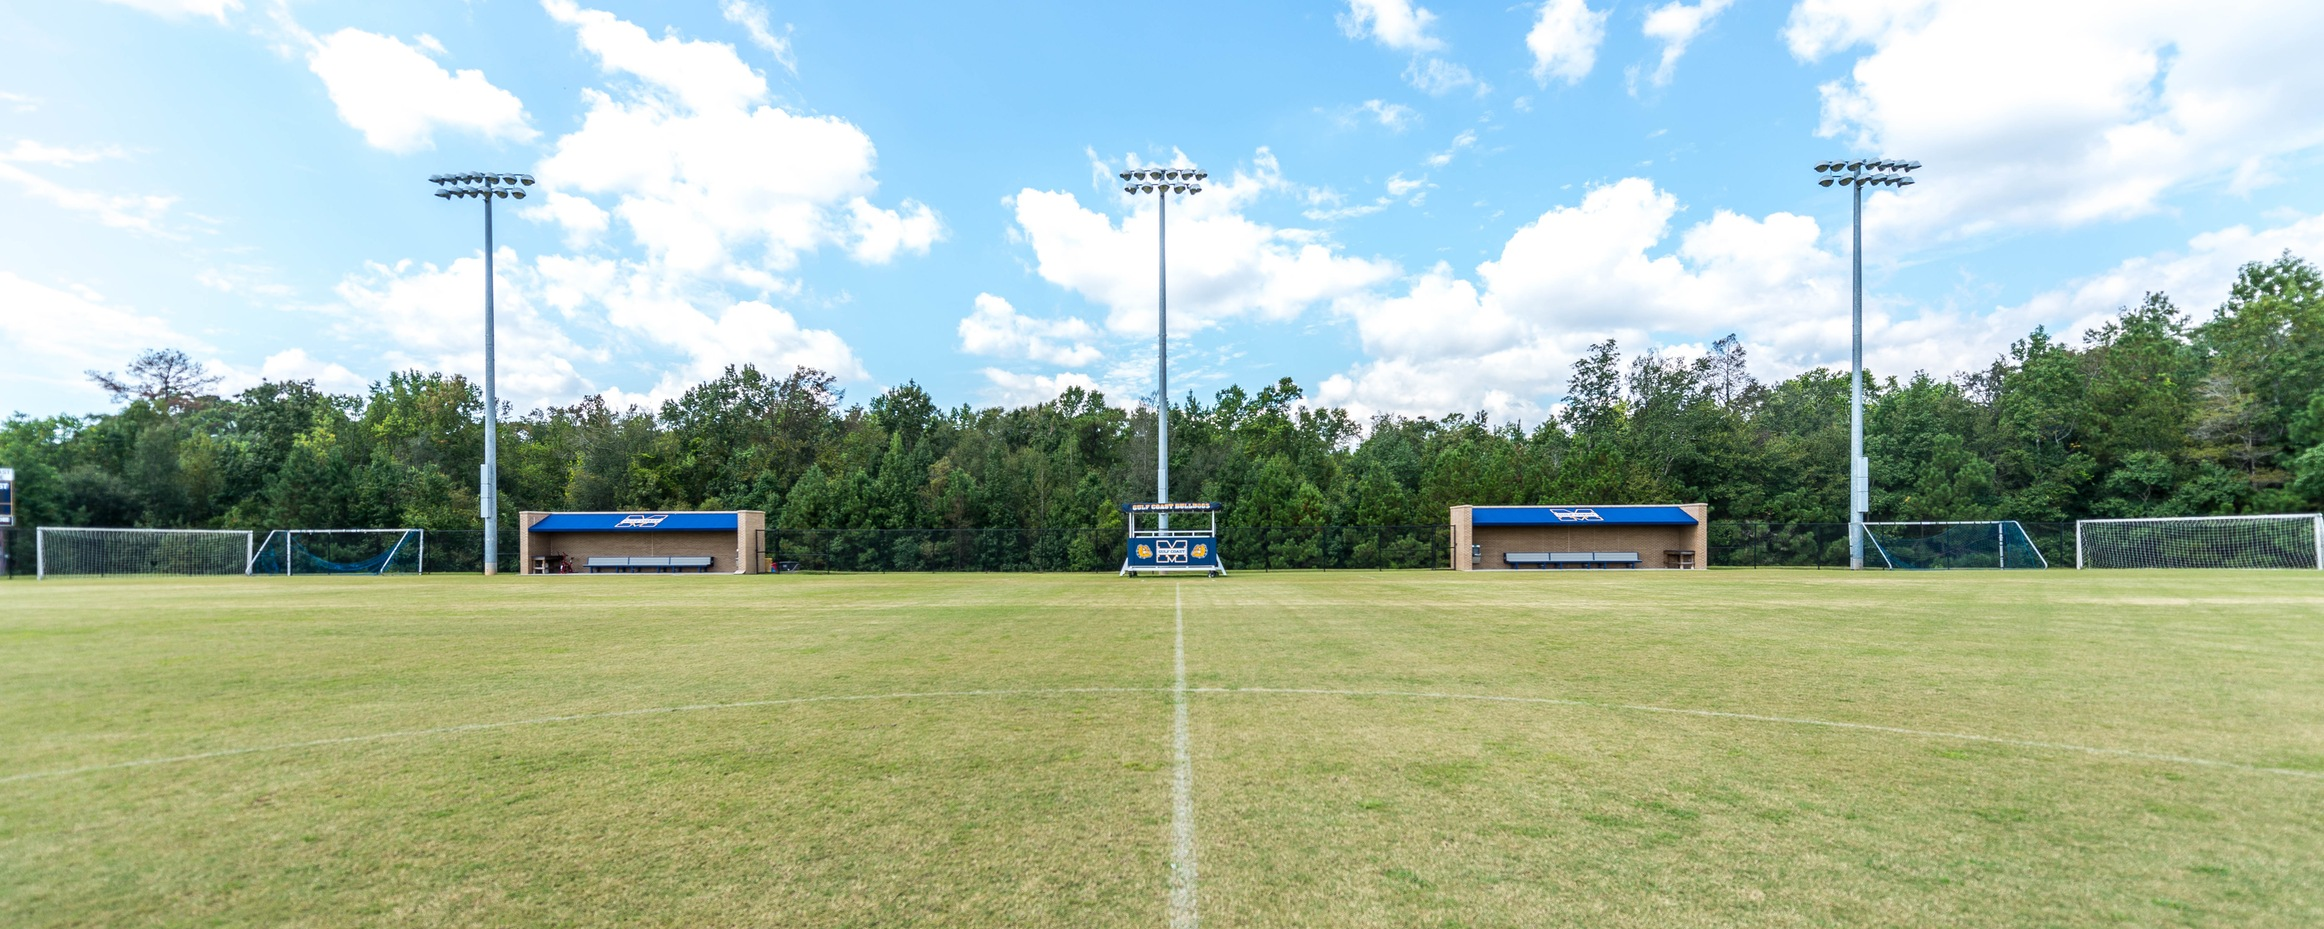 MGCCC-JCJC games relocating